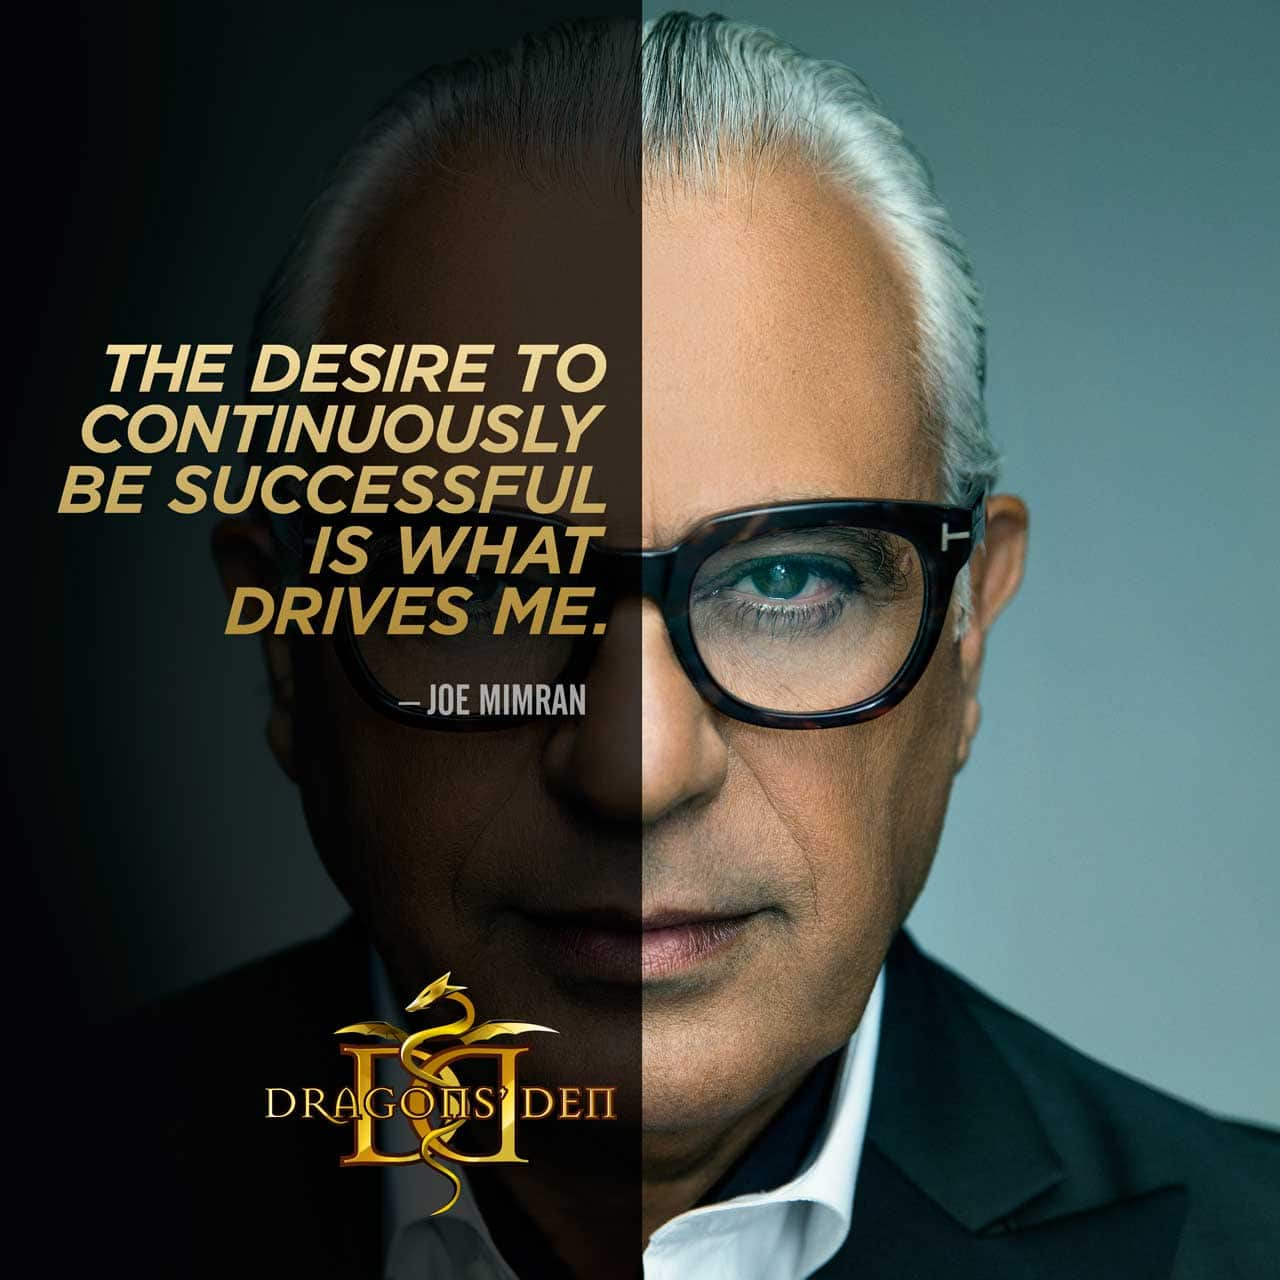 The desire to be continuously successful is what drives me. Said by Joe Mimran